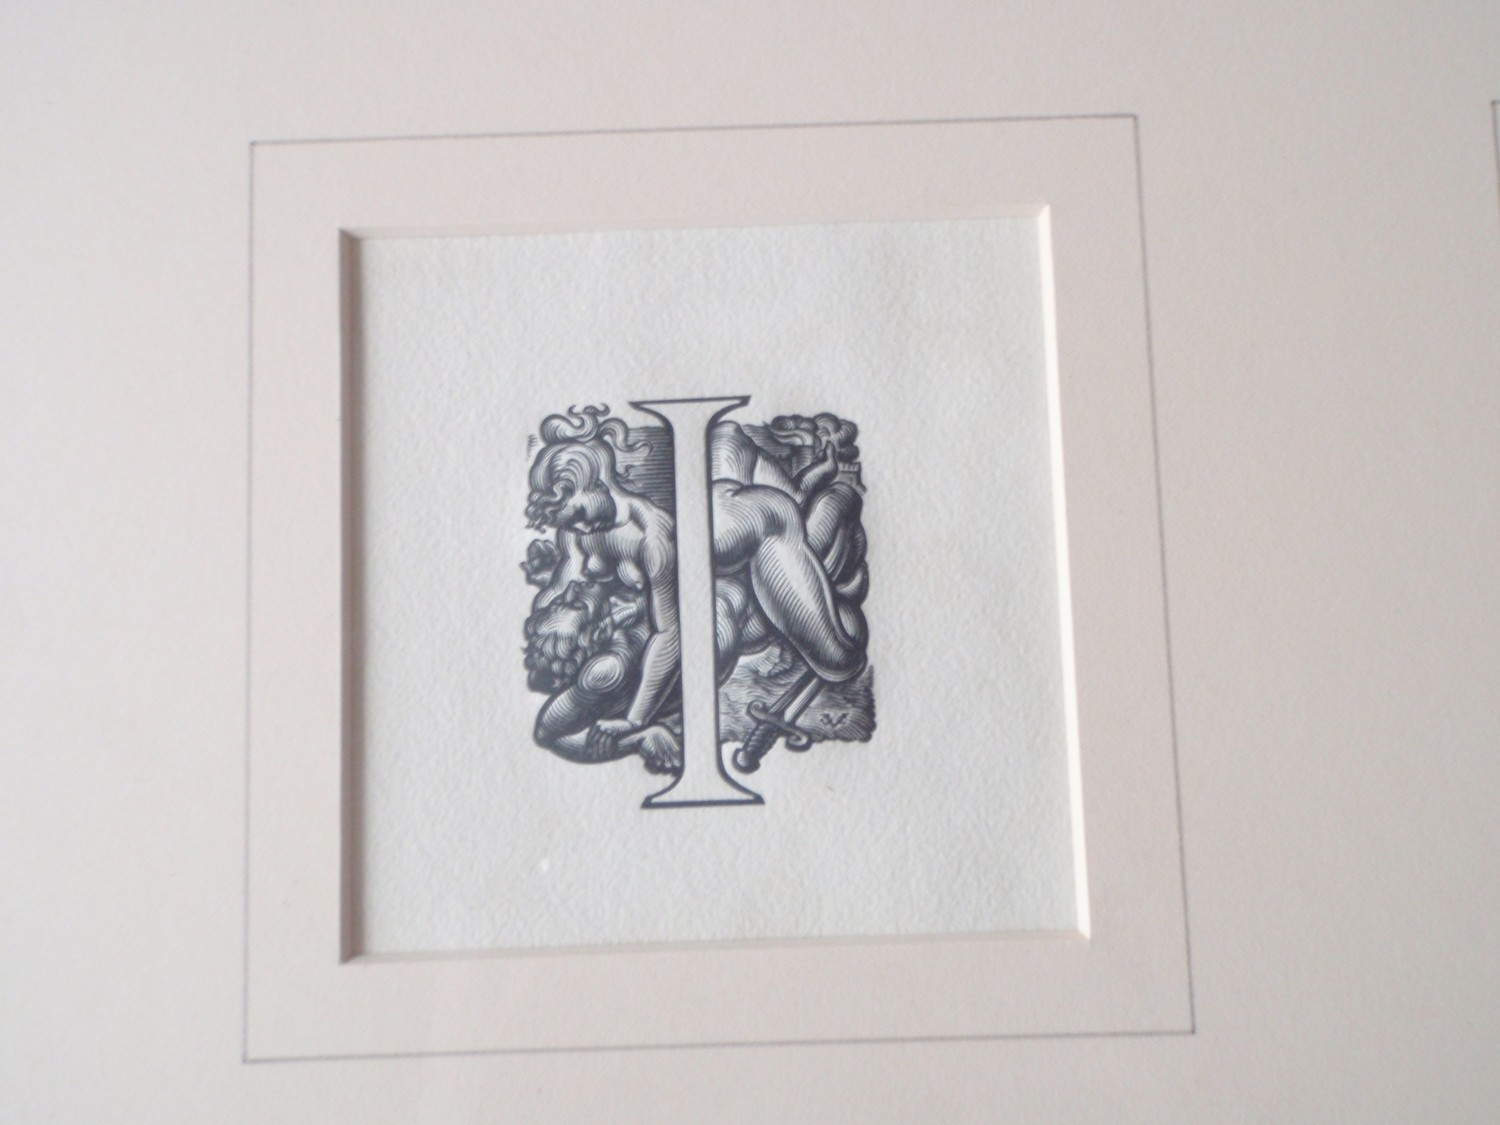 Art Deco 1935 Valentine Le Campion Erotic Engraving Drawing Letter I